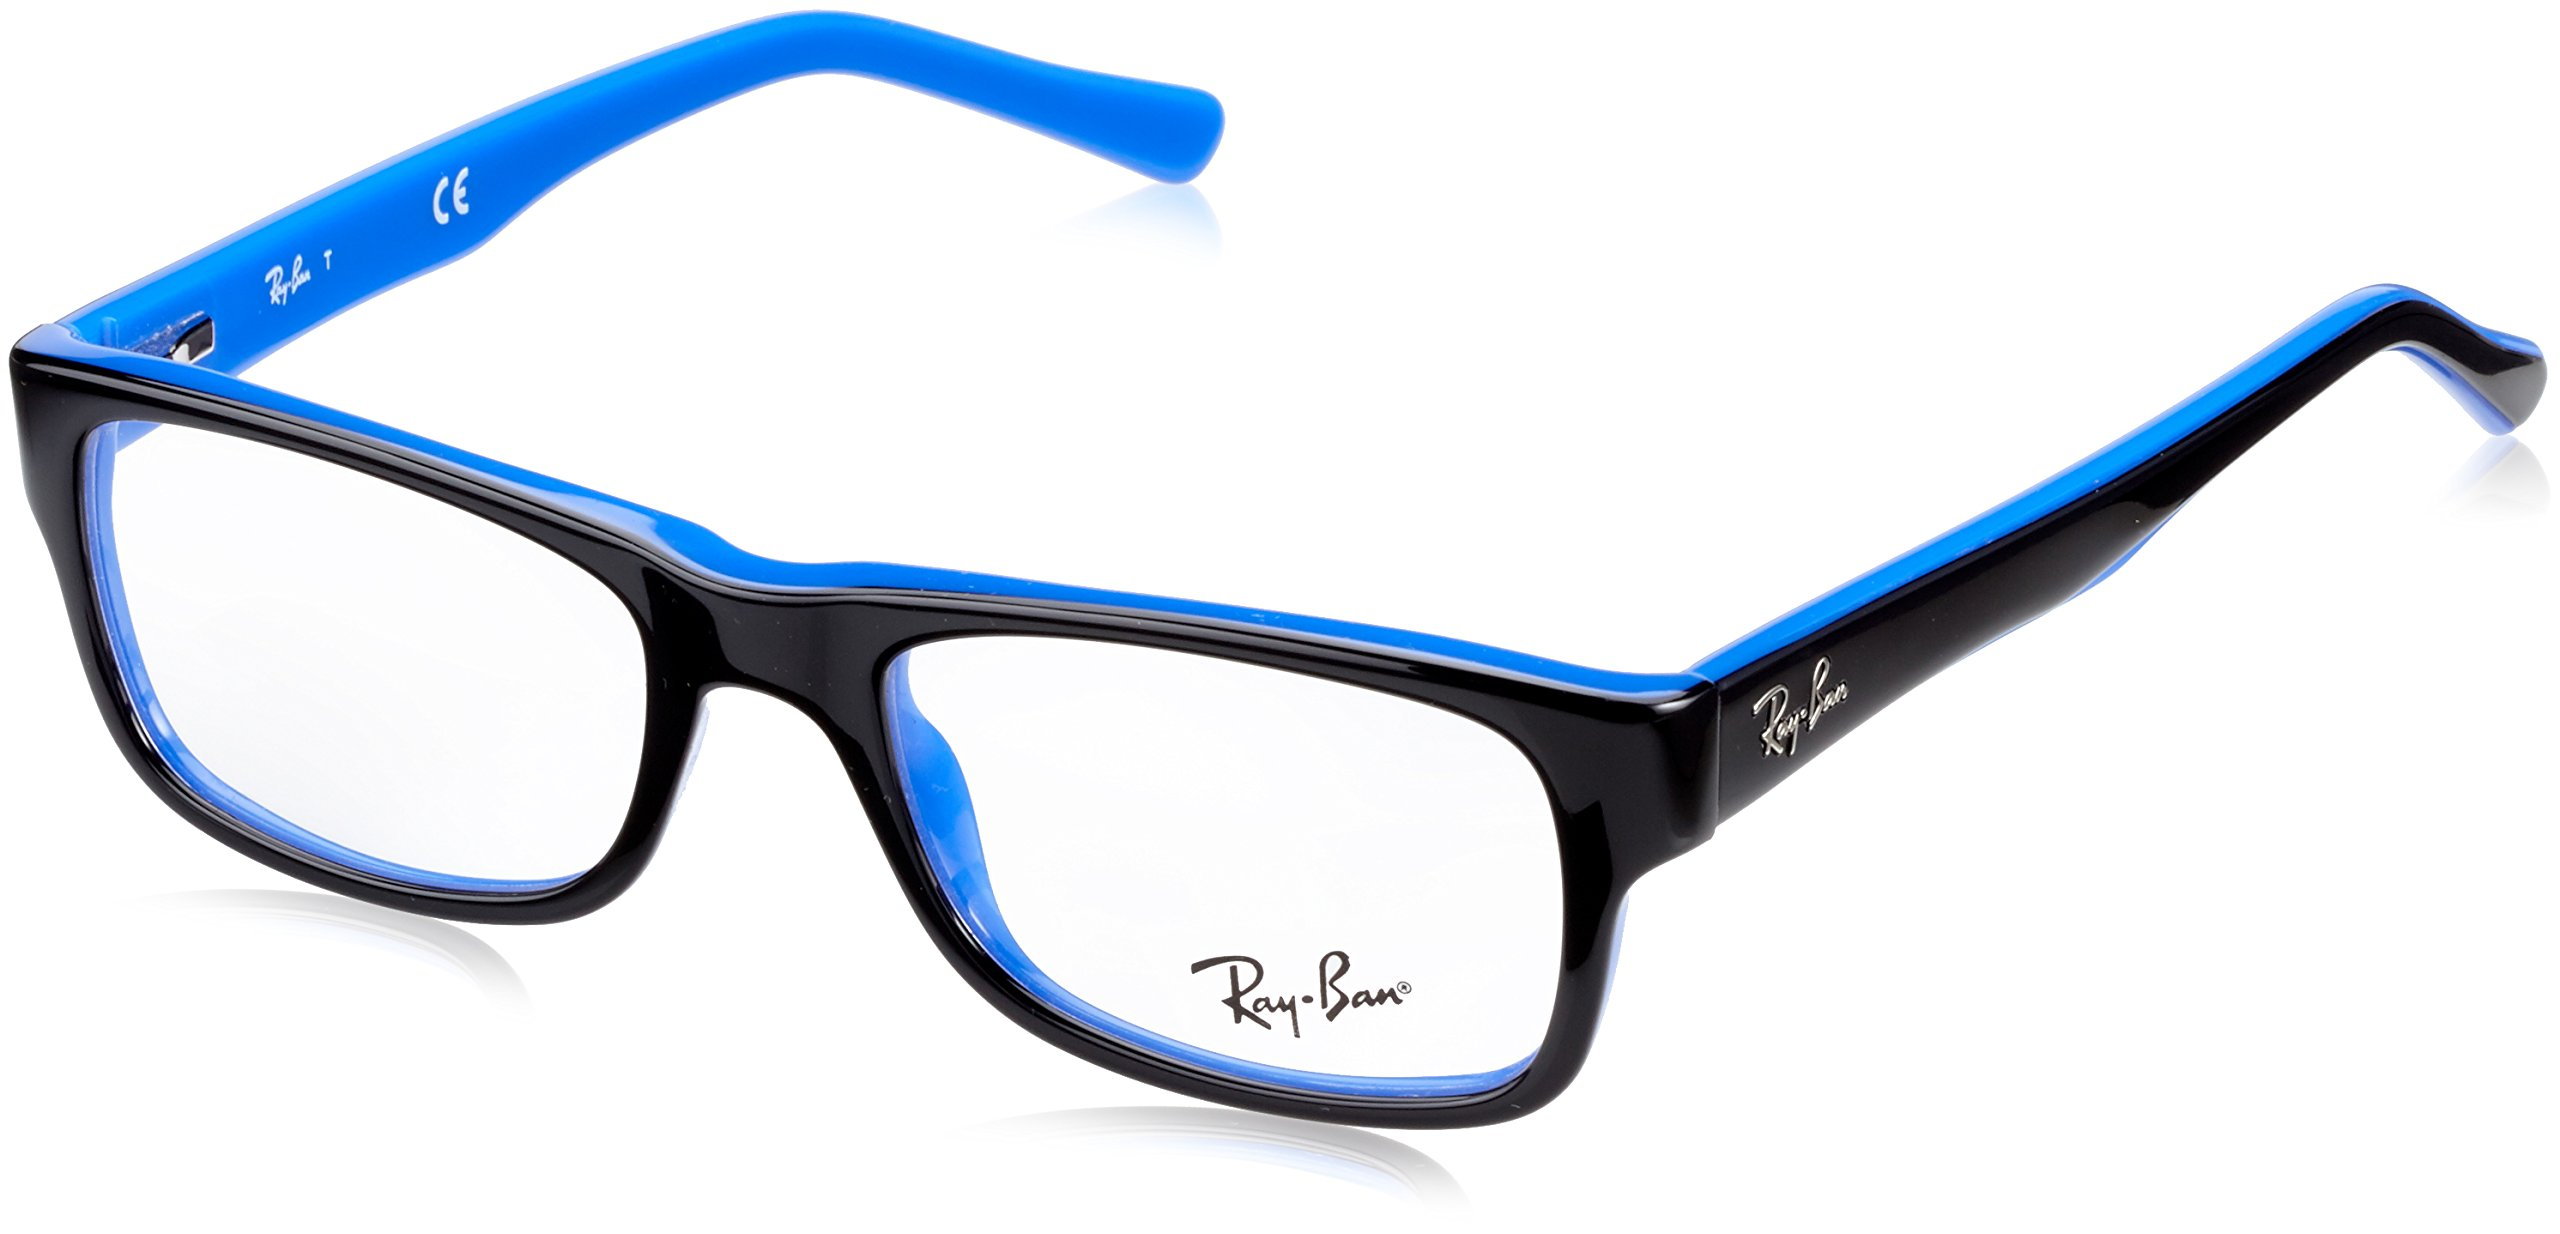 Ray Ban RX5268 Eyeglasses-5179 Top Black On Blue-48mm by Ray-Ban